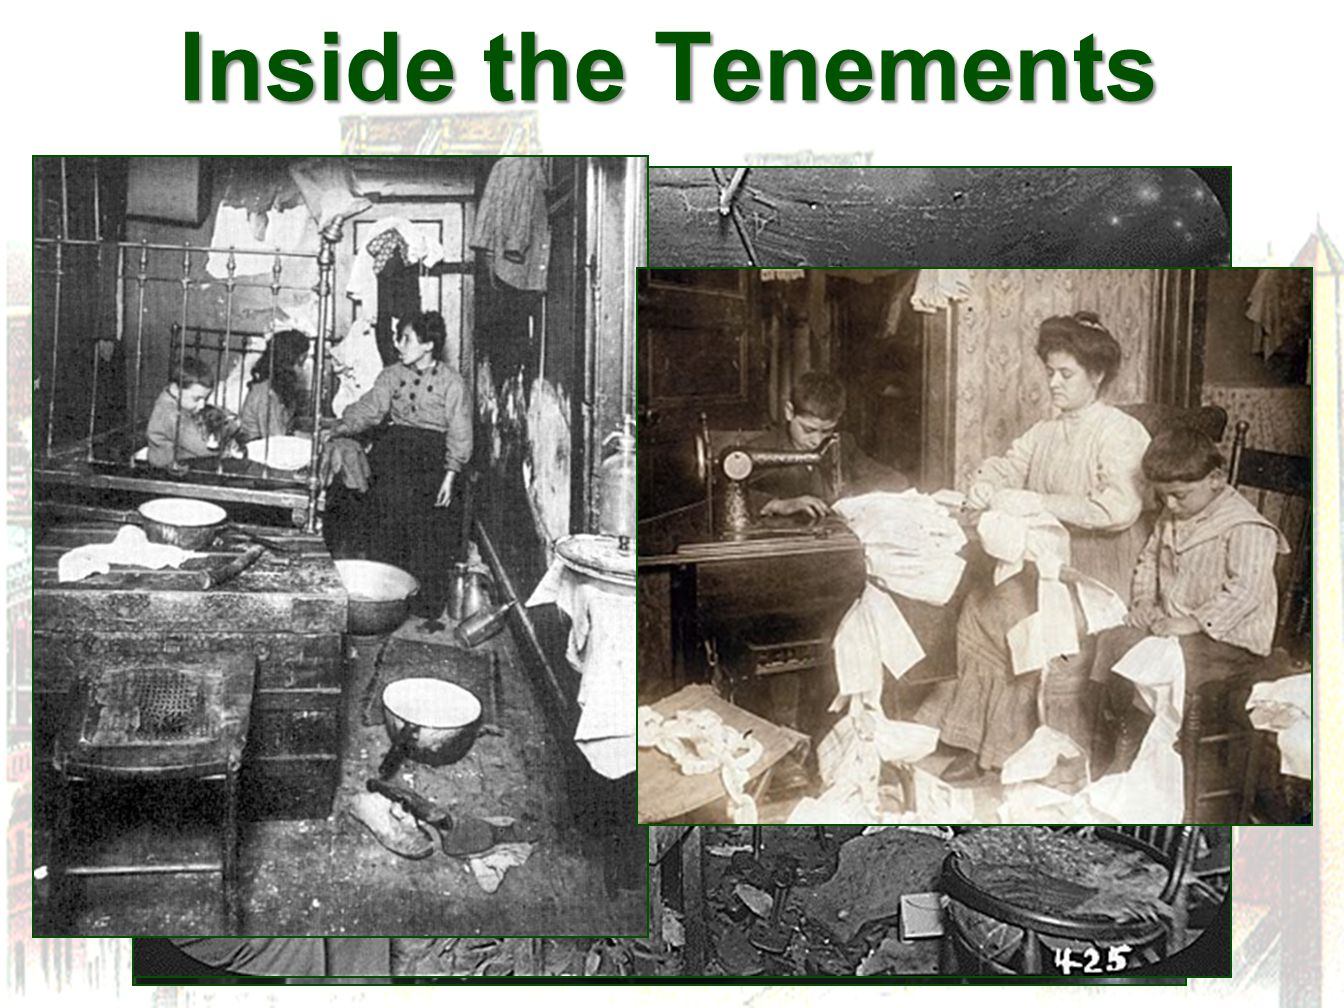 Inside the Tenements